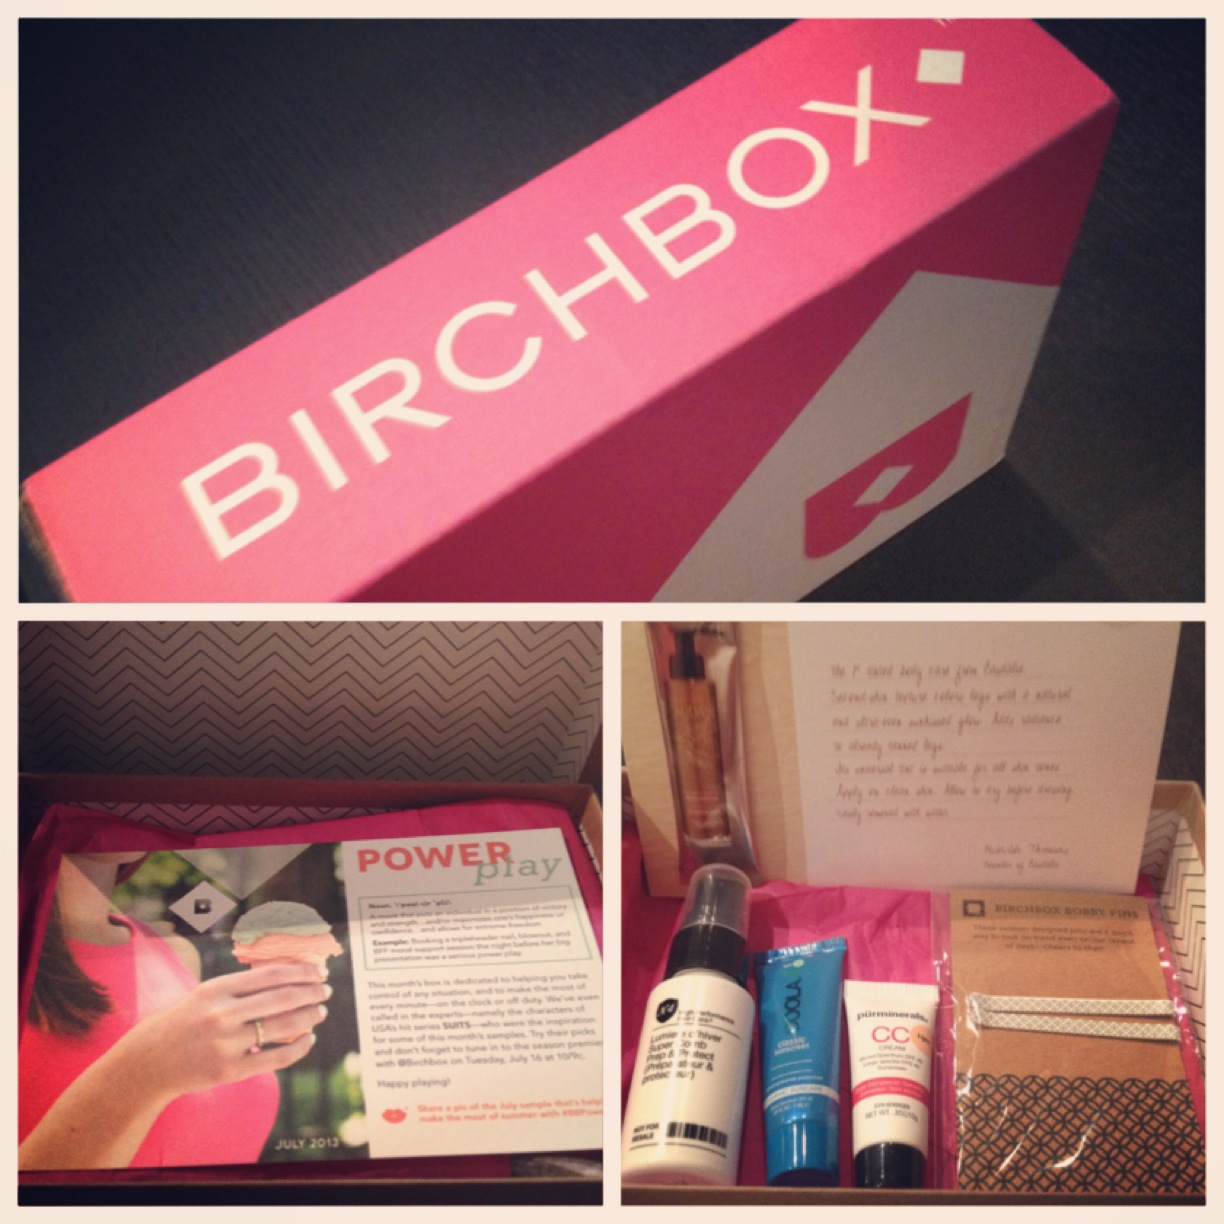 New Logo and Identity for Birchbox by Red Antler